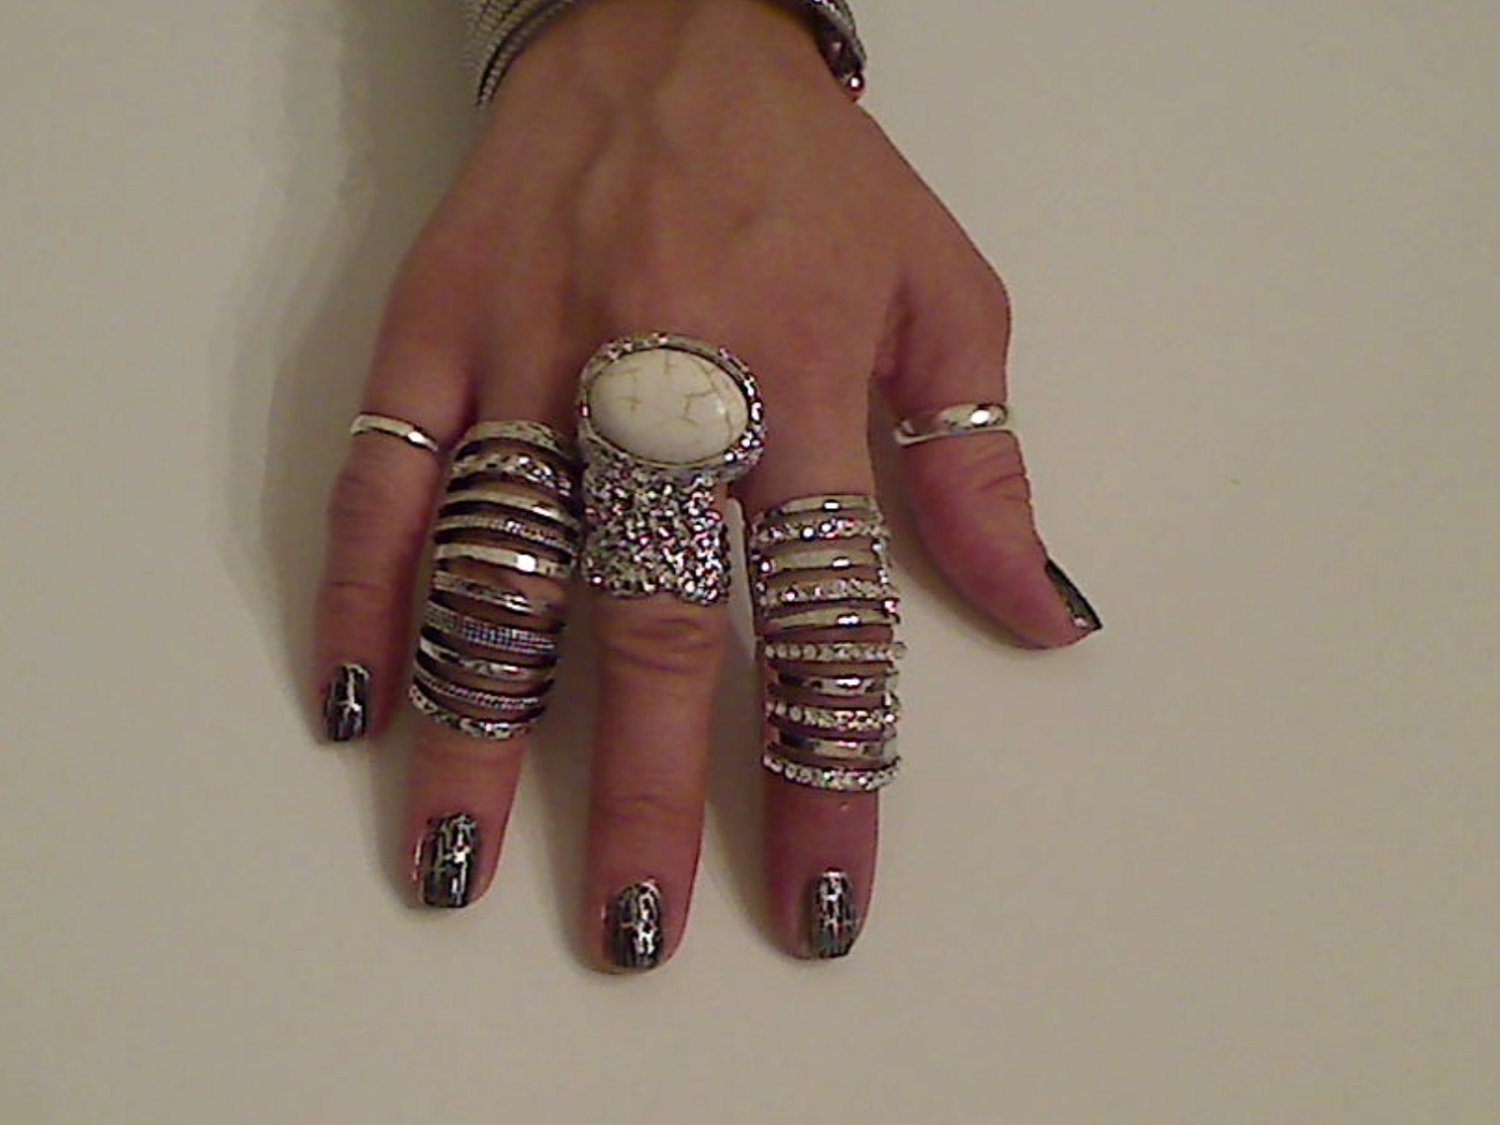 CREAM ARTY CHUNKY MOON KNUCKLE RING IN SILVER SIZES *6*7*8*9